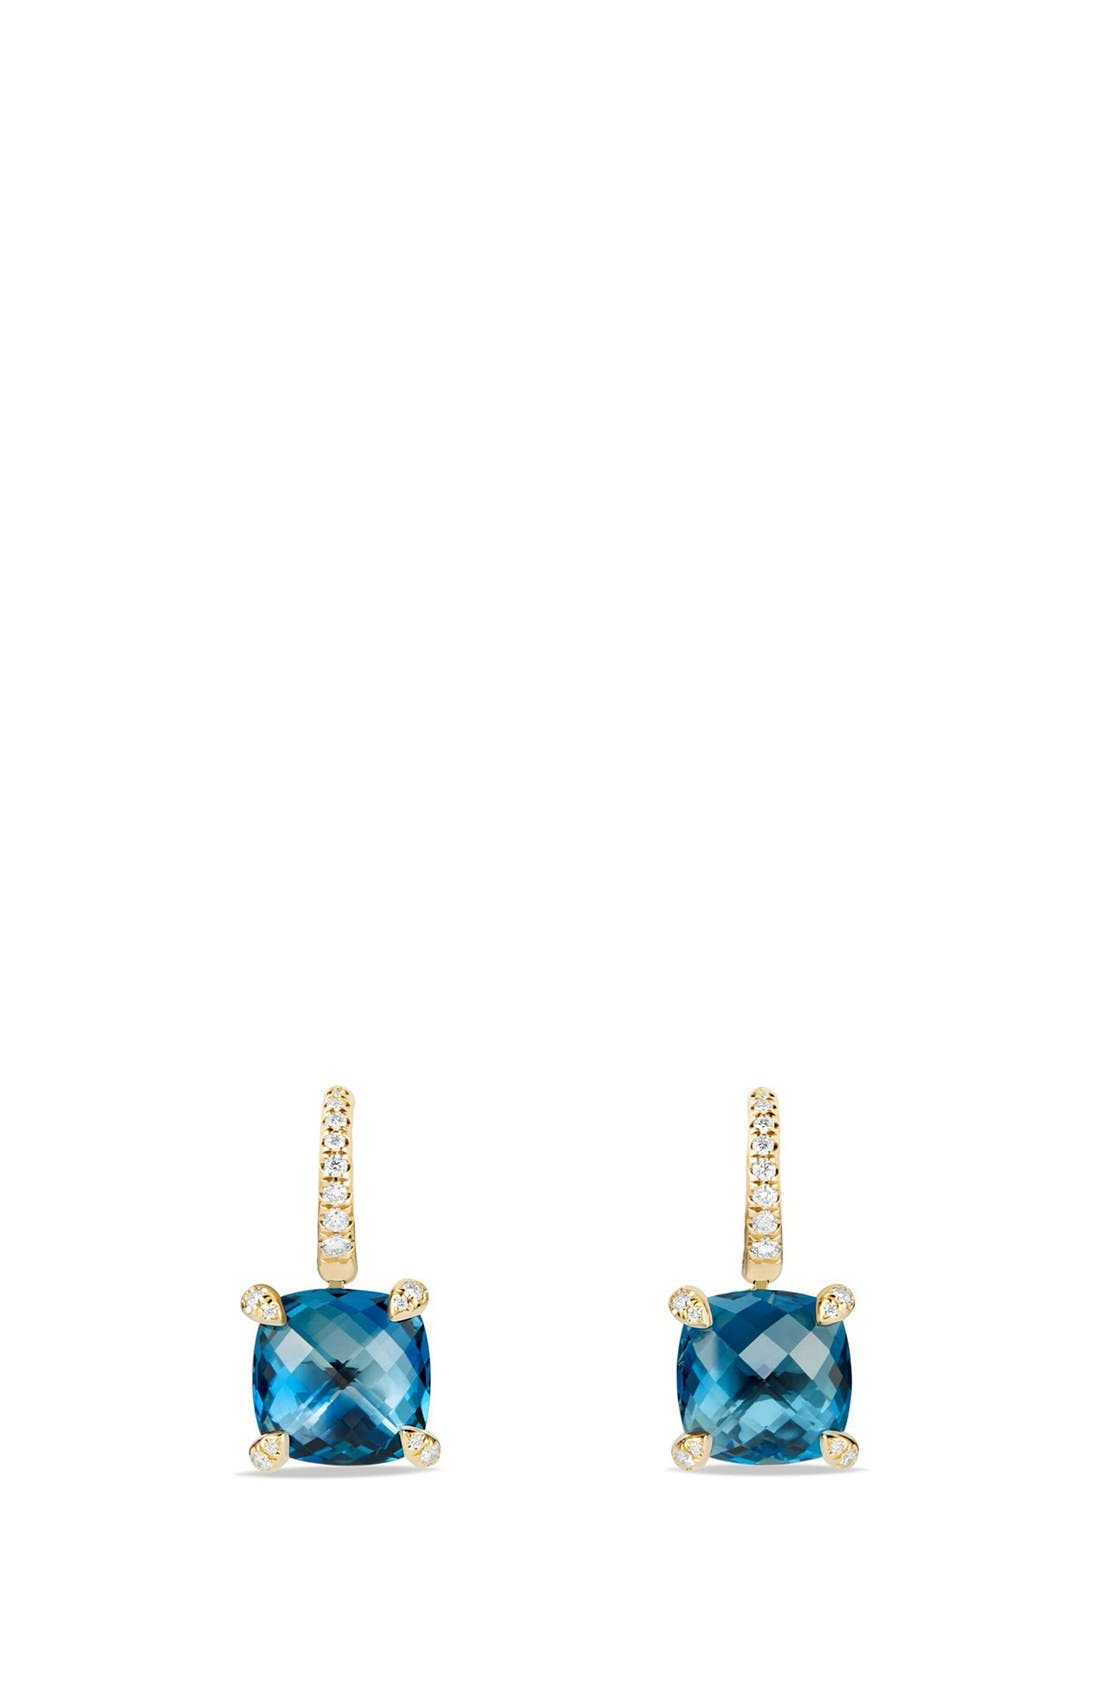 'Chatelaine' Hampton Blue Topaz and Diamonds in 18K Gold,                         Main,                         color, 400